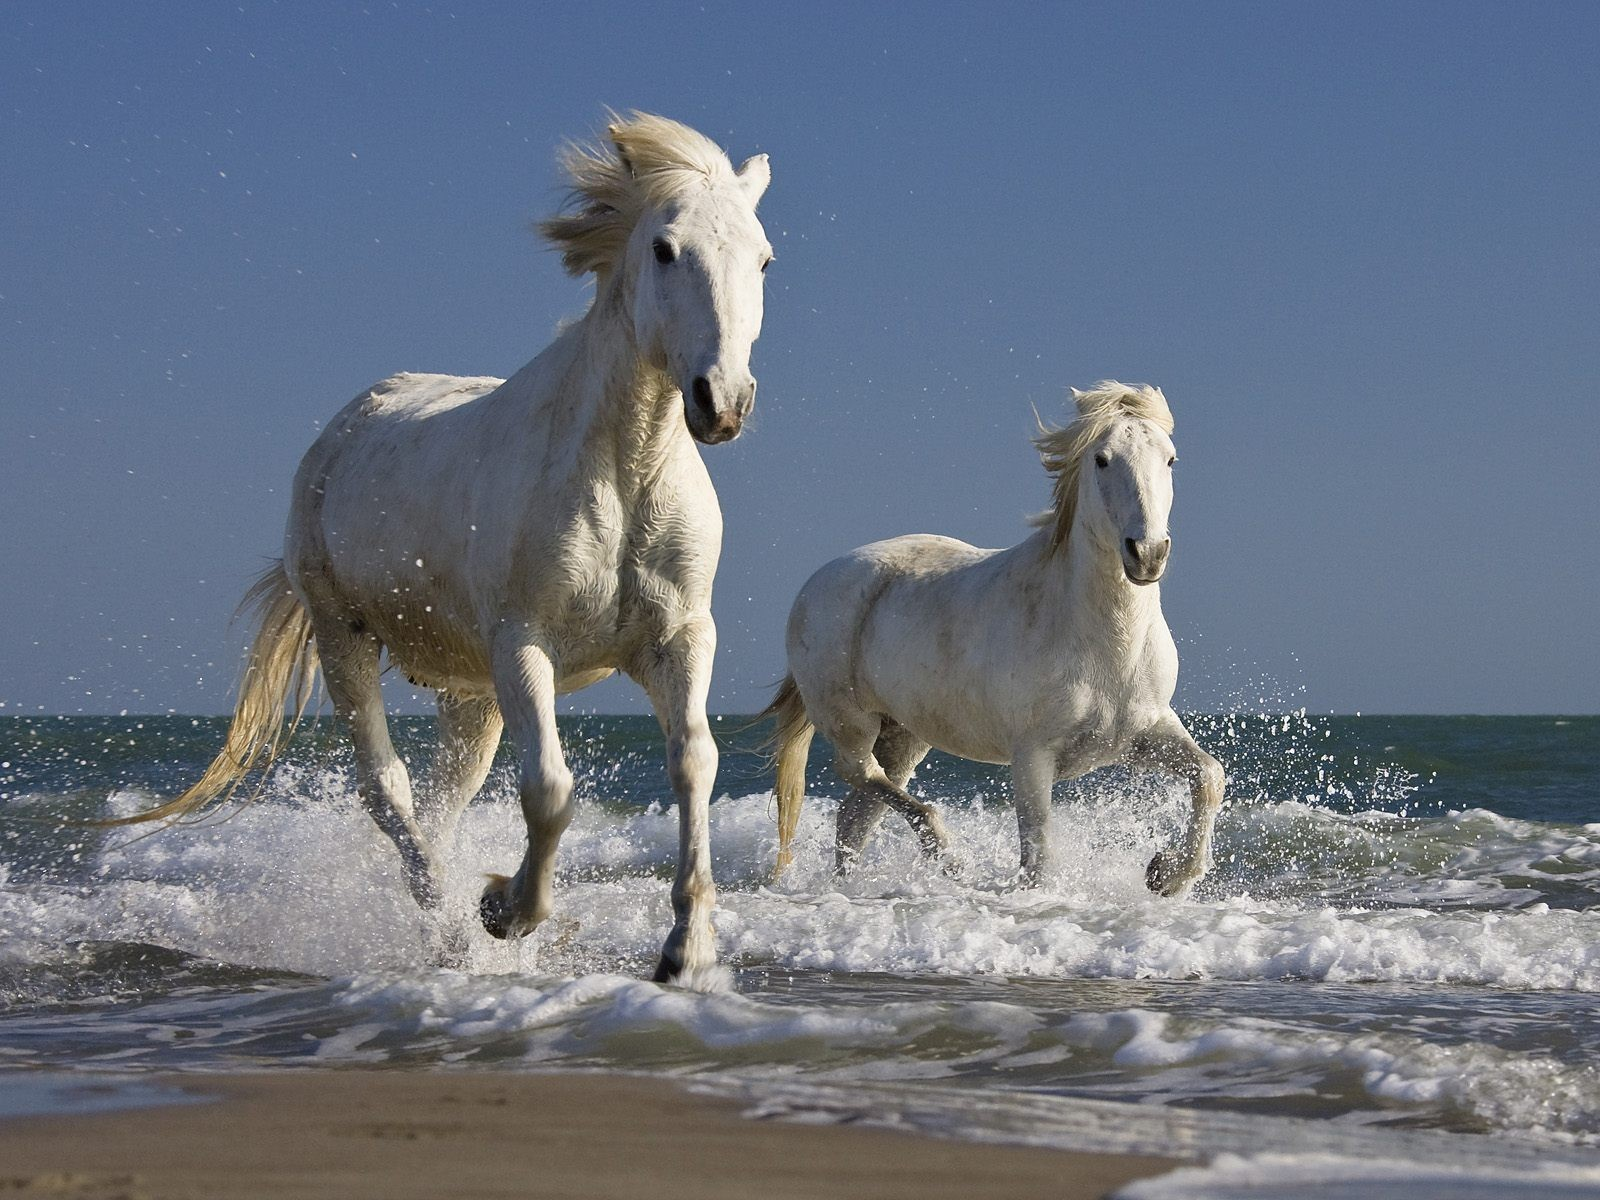 Animals ocean waves Horses HD Wallpaper